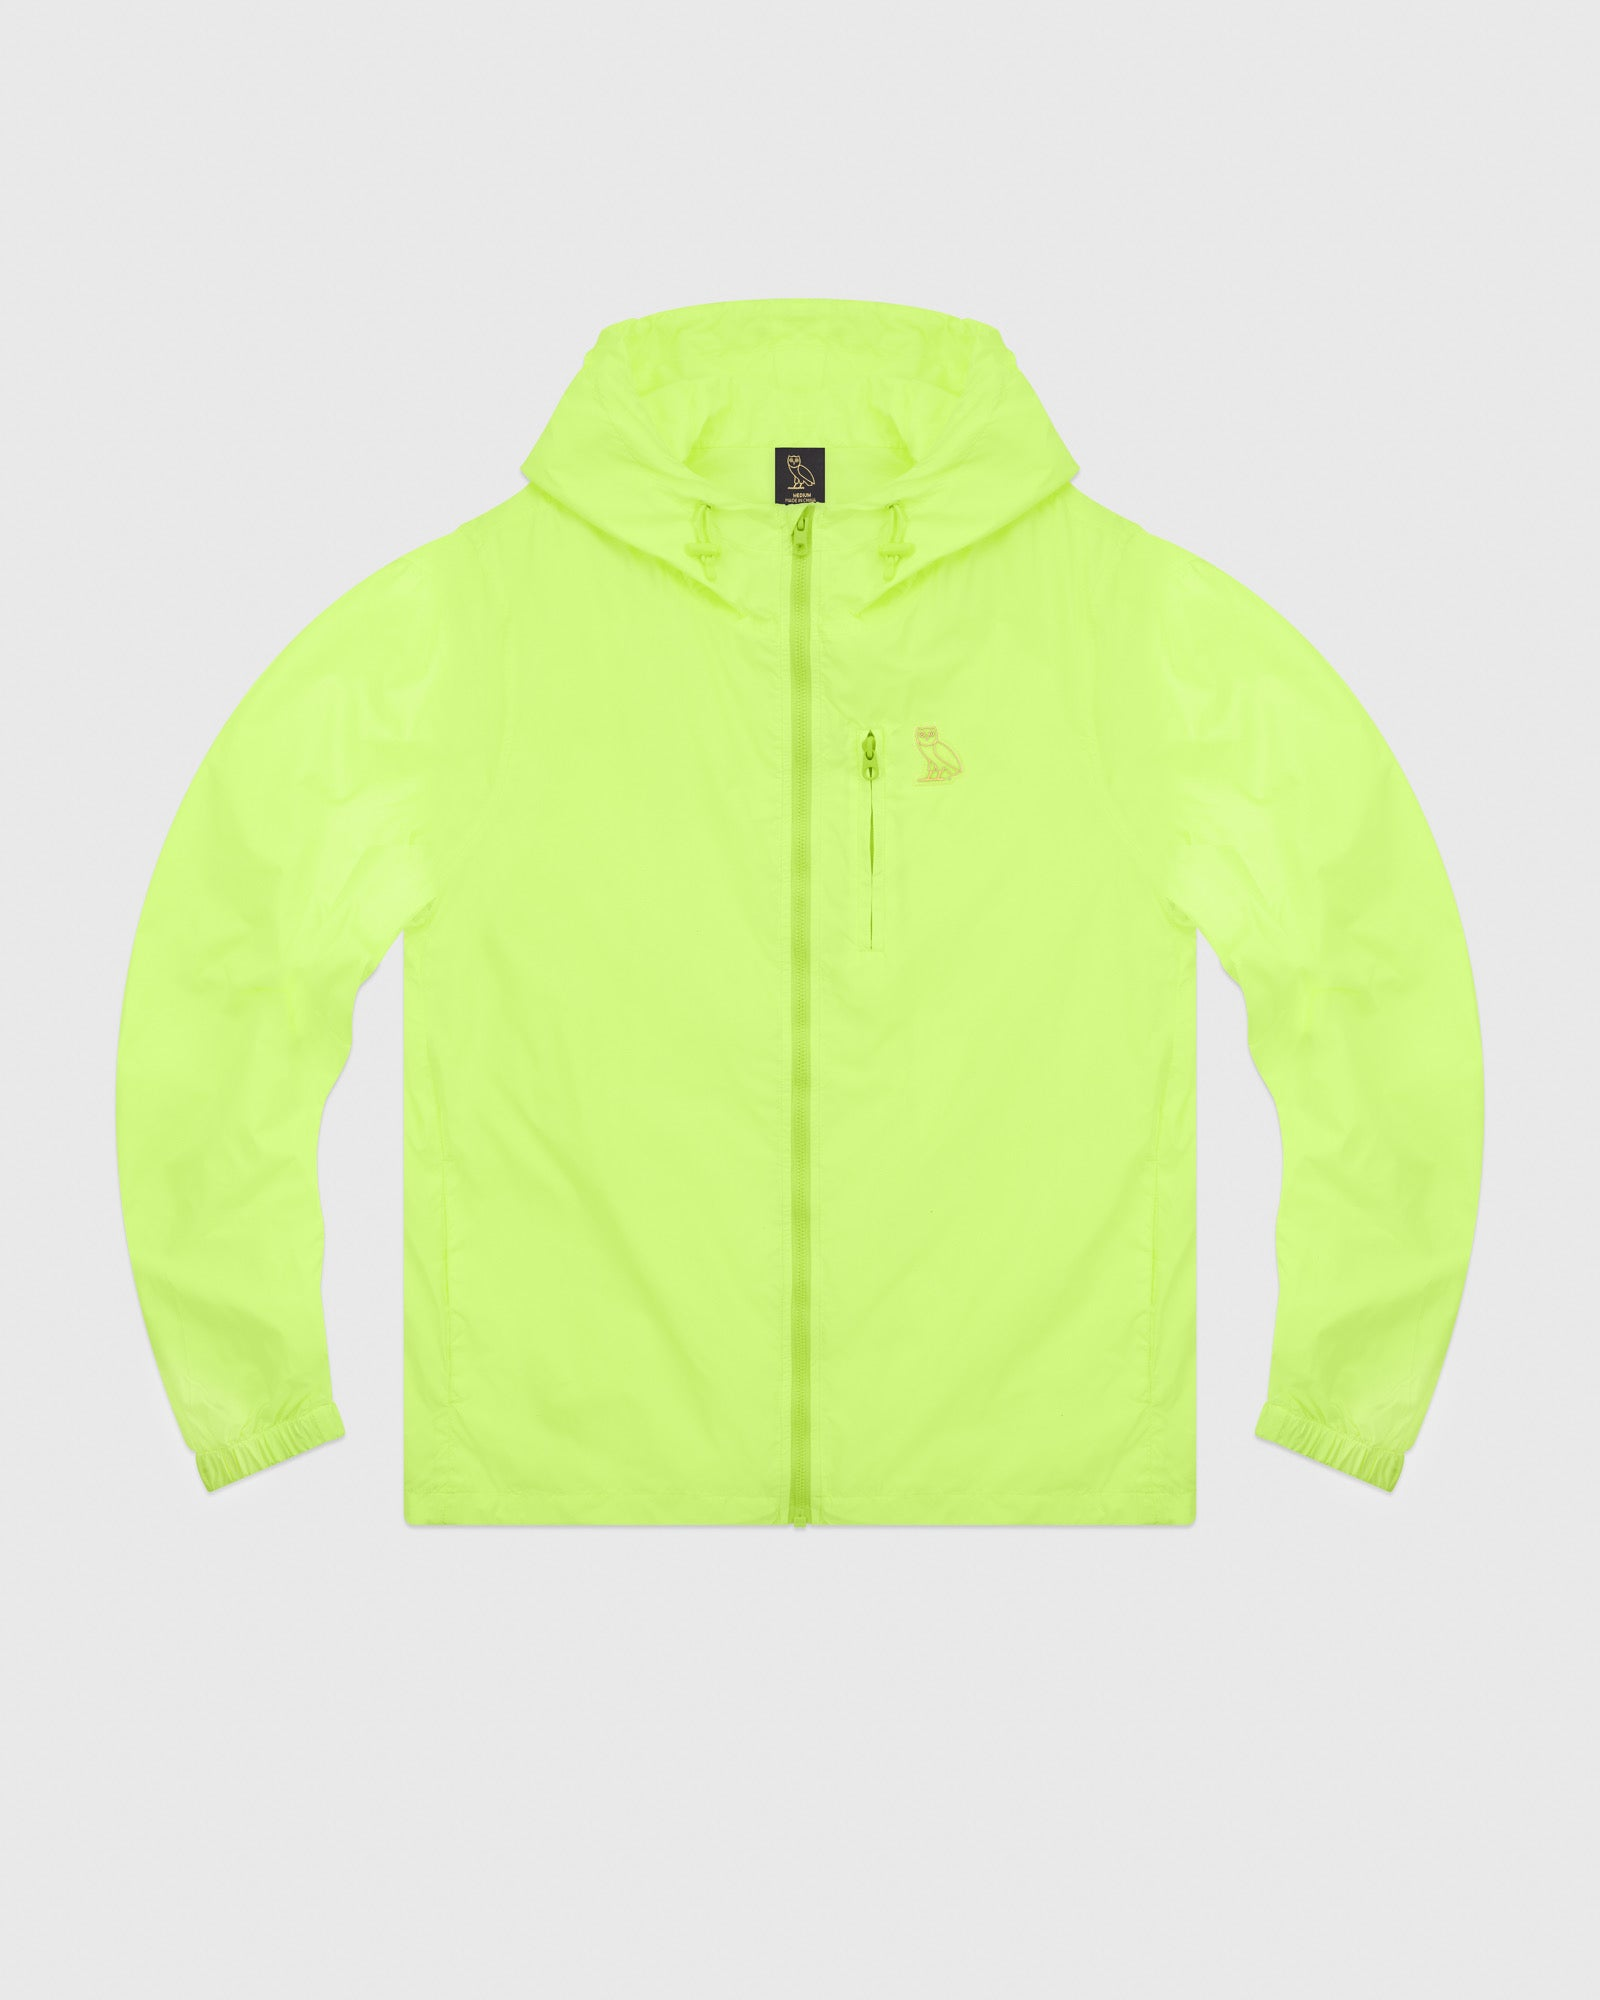 ad0e65ccf6327a OVO NYLON PACKABLE JACKET - NEON GREEN – October s Very Own Online US